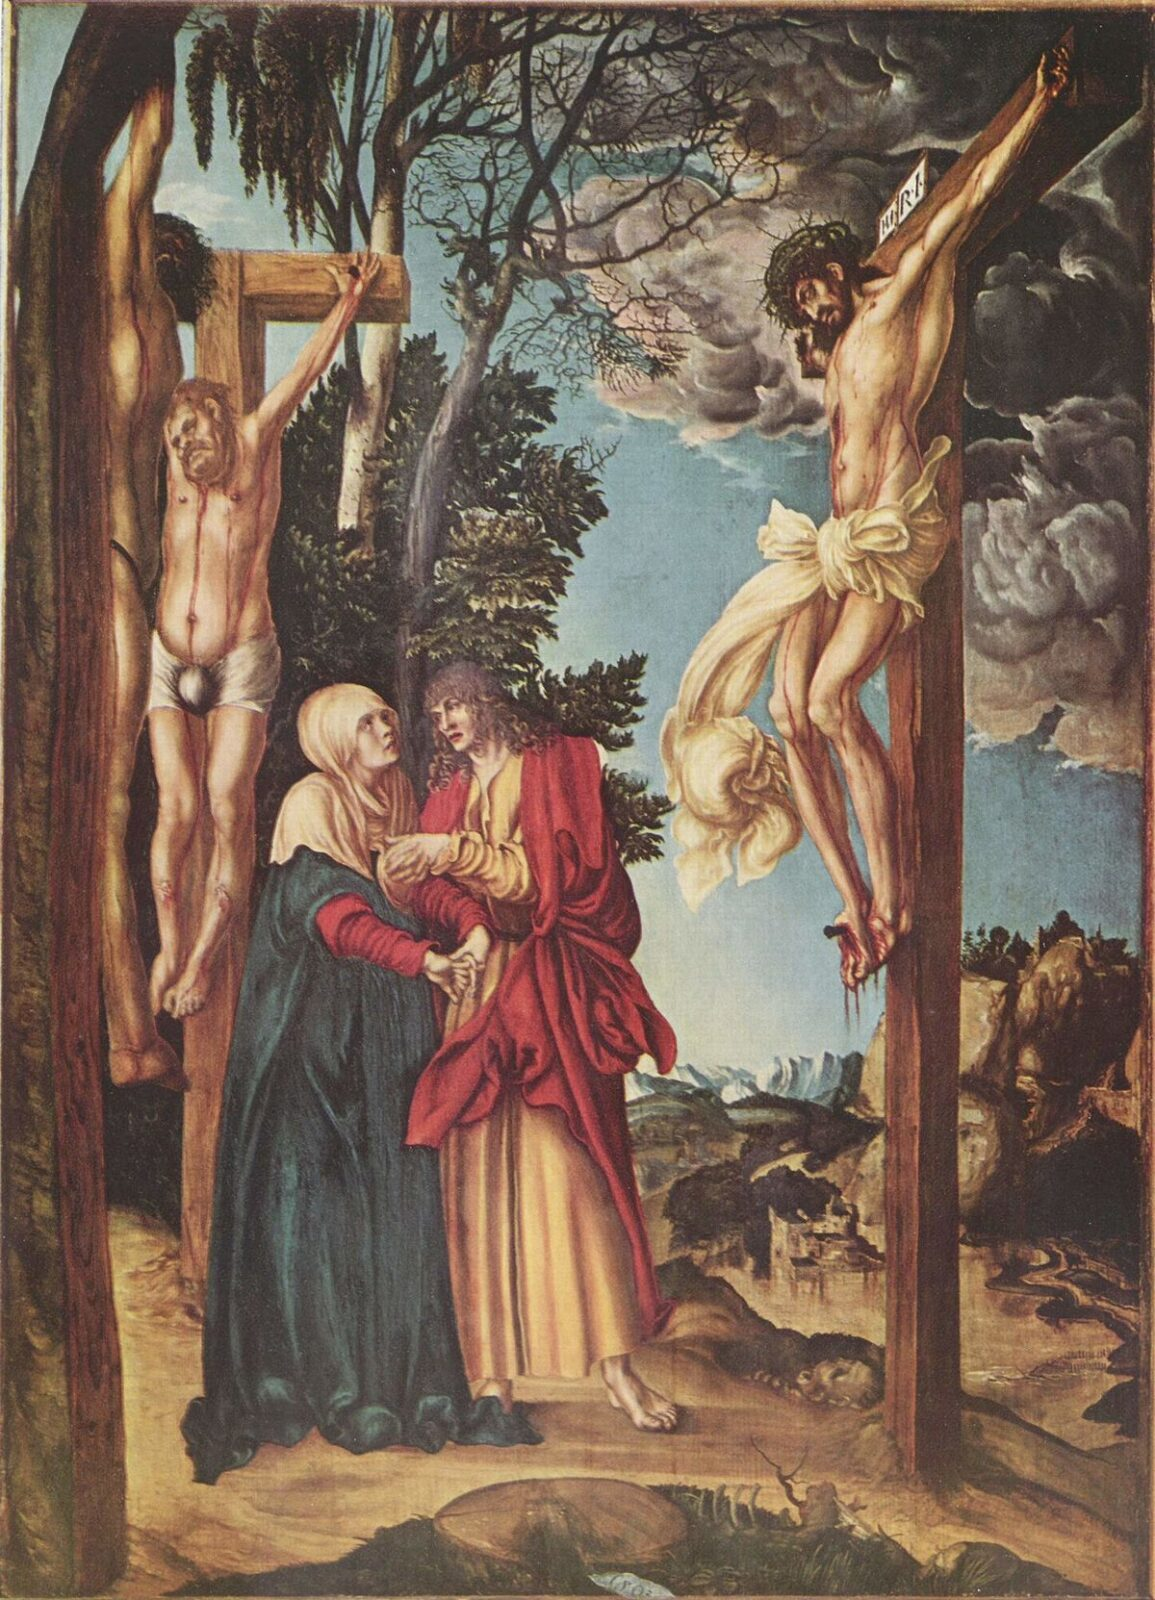 Cranach's painting sold under duress during World War II will be auctioned as part of a court settlement